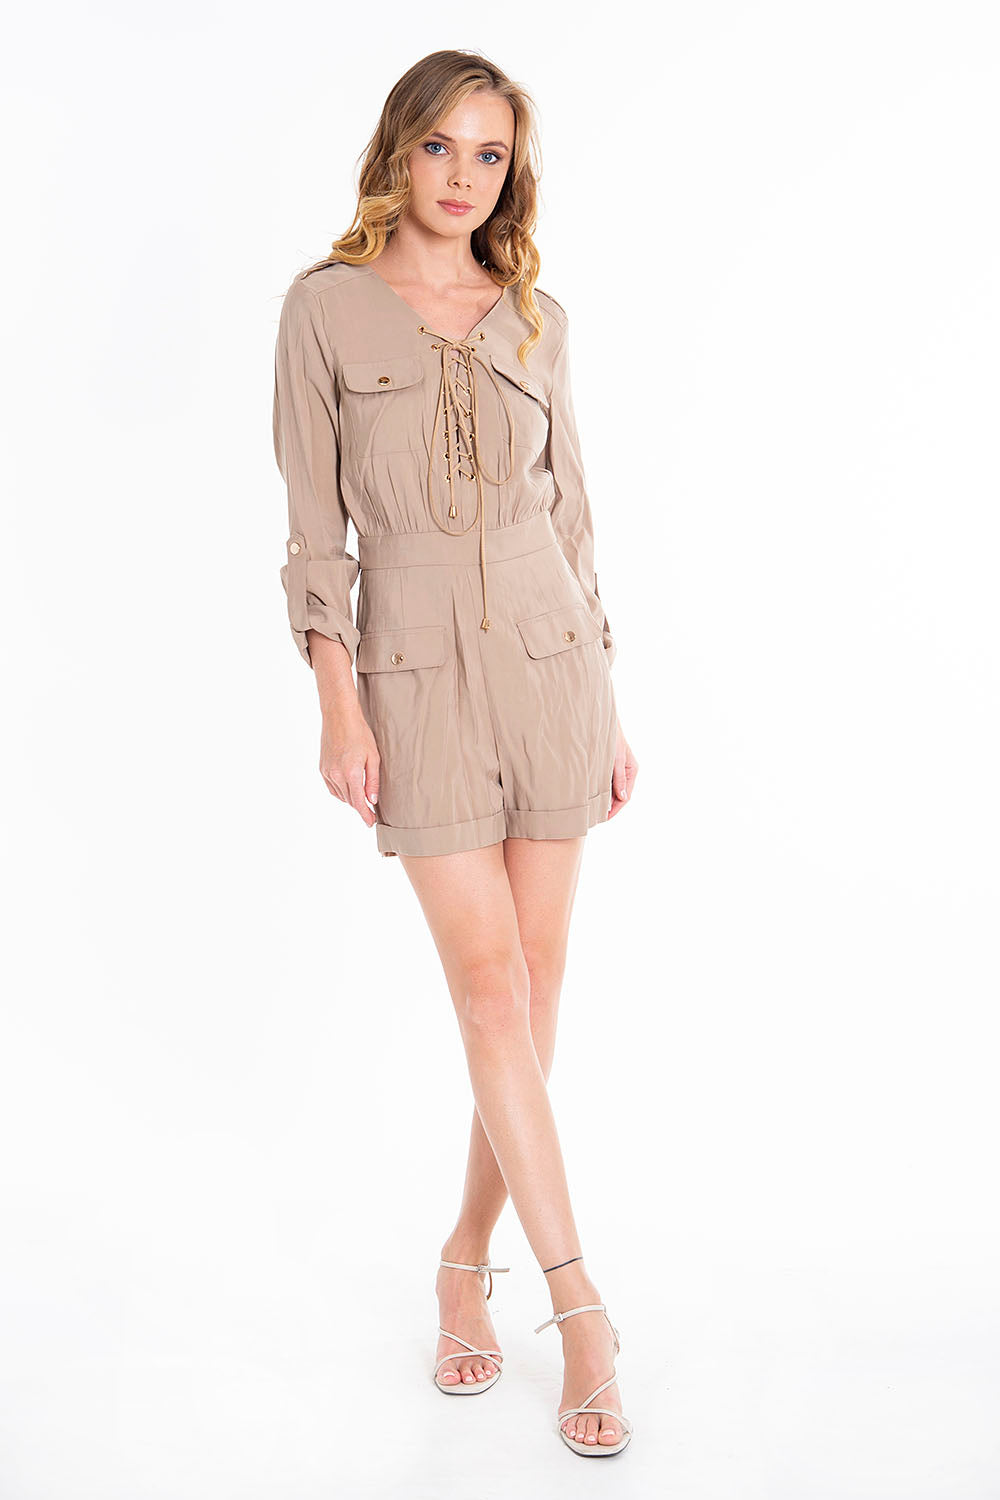 Trash and Luxury safari playsuit with front tie